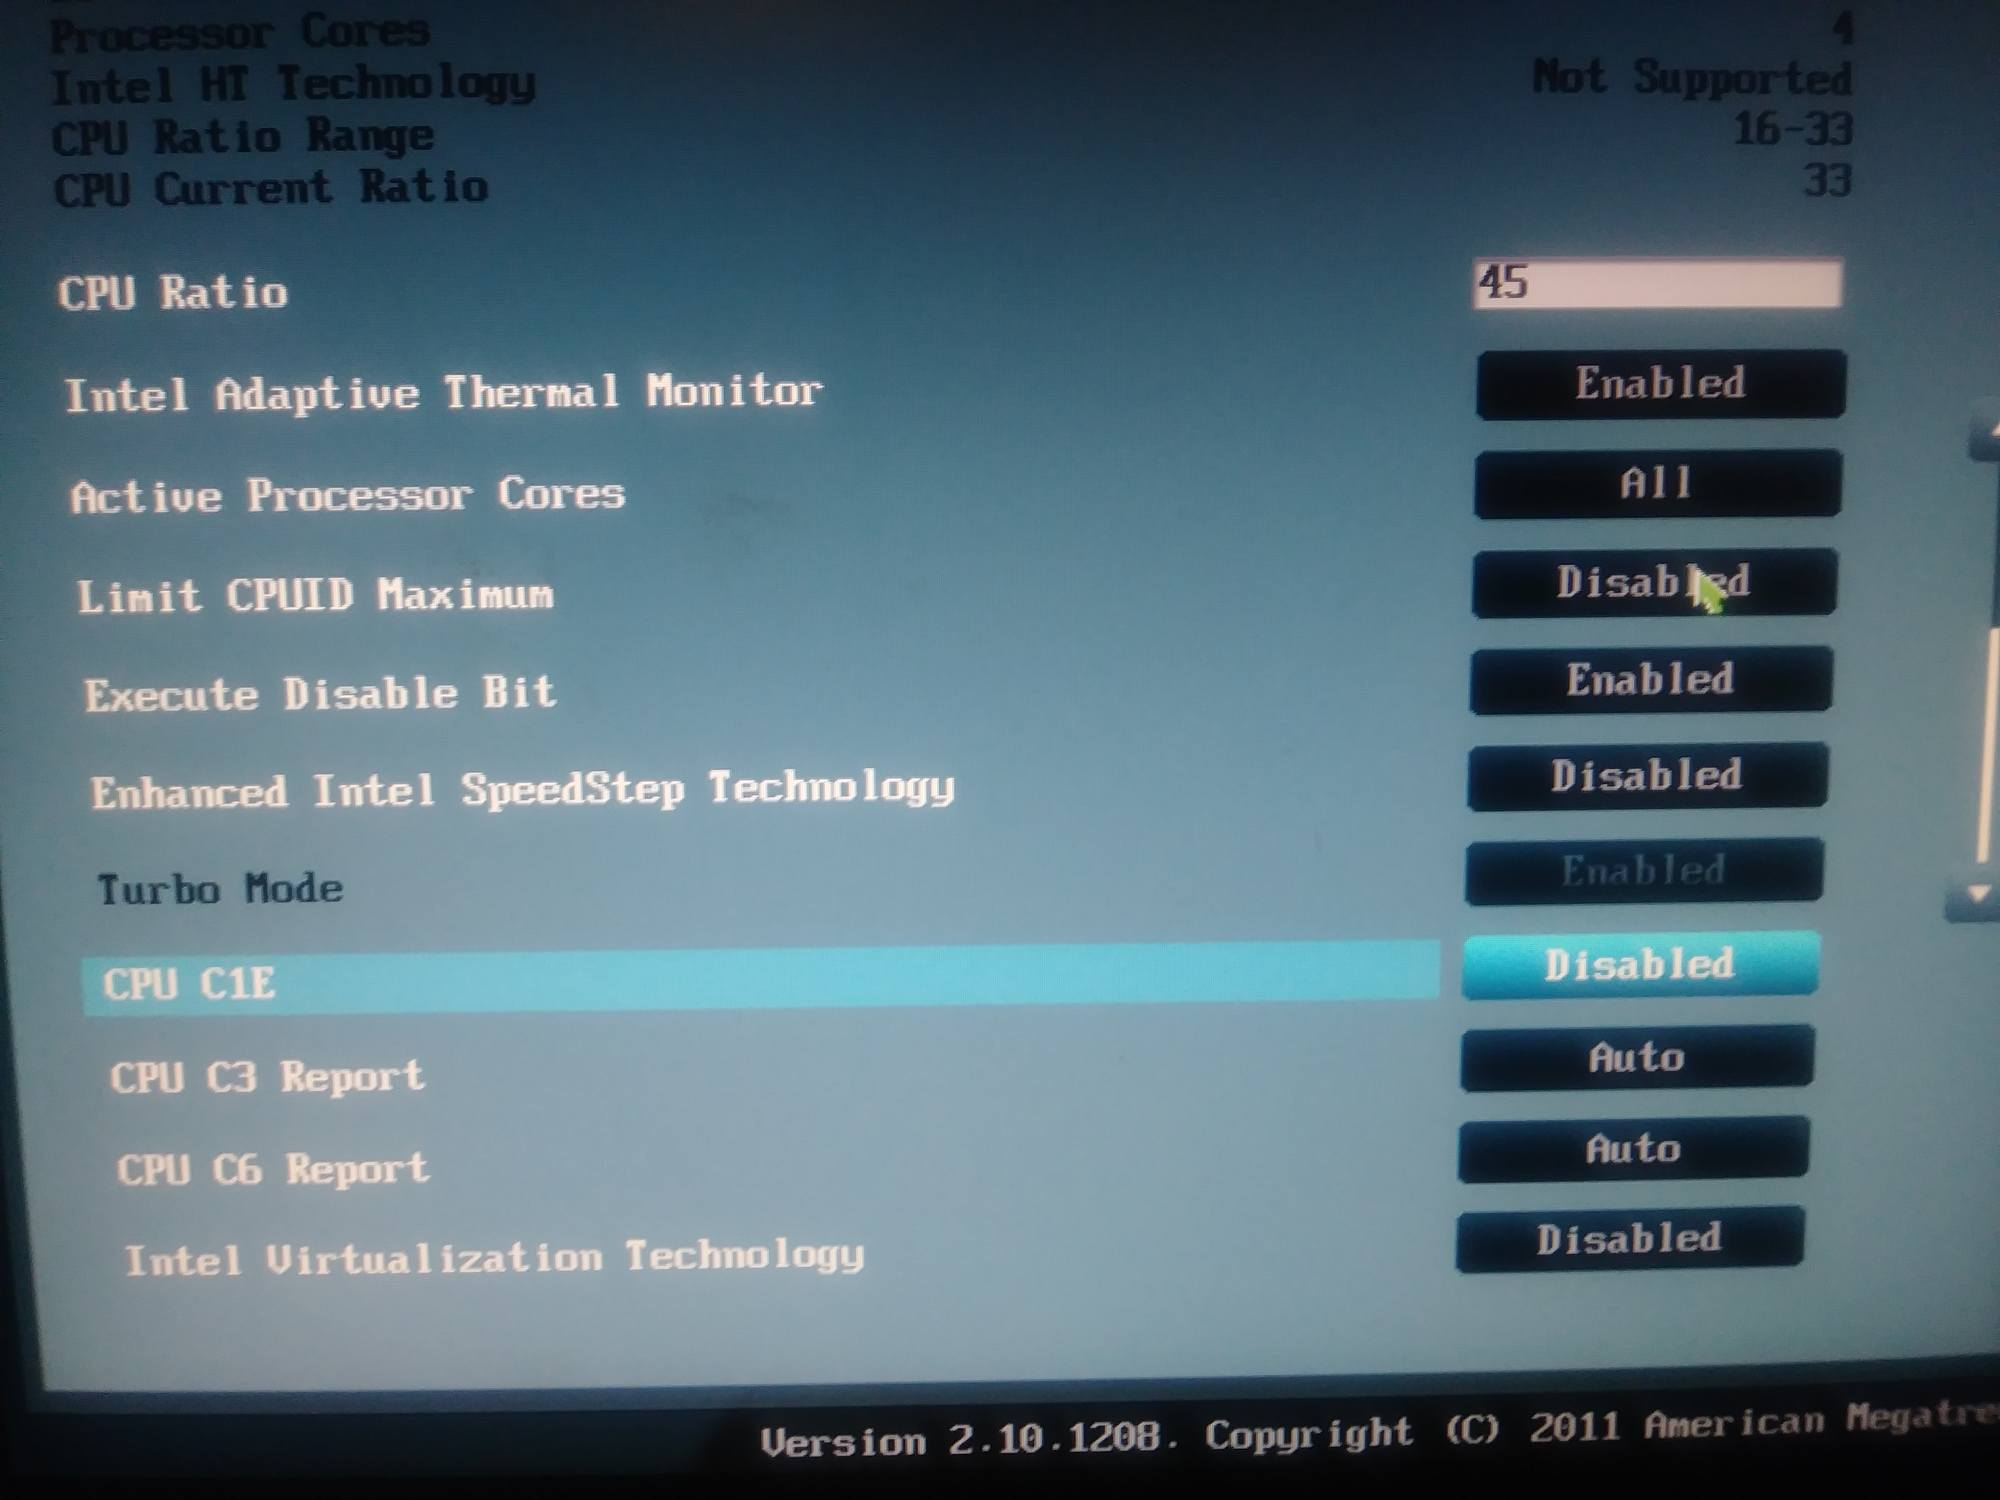 I5 2500k and asus pz67 mobo - CPUs, Motherboards, and Memory